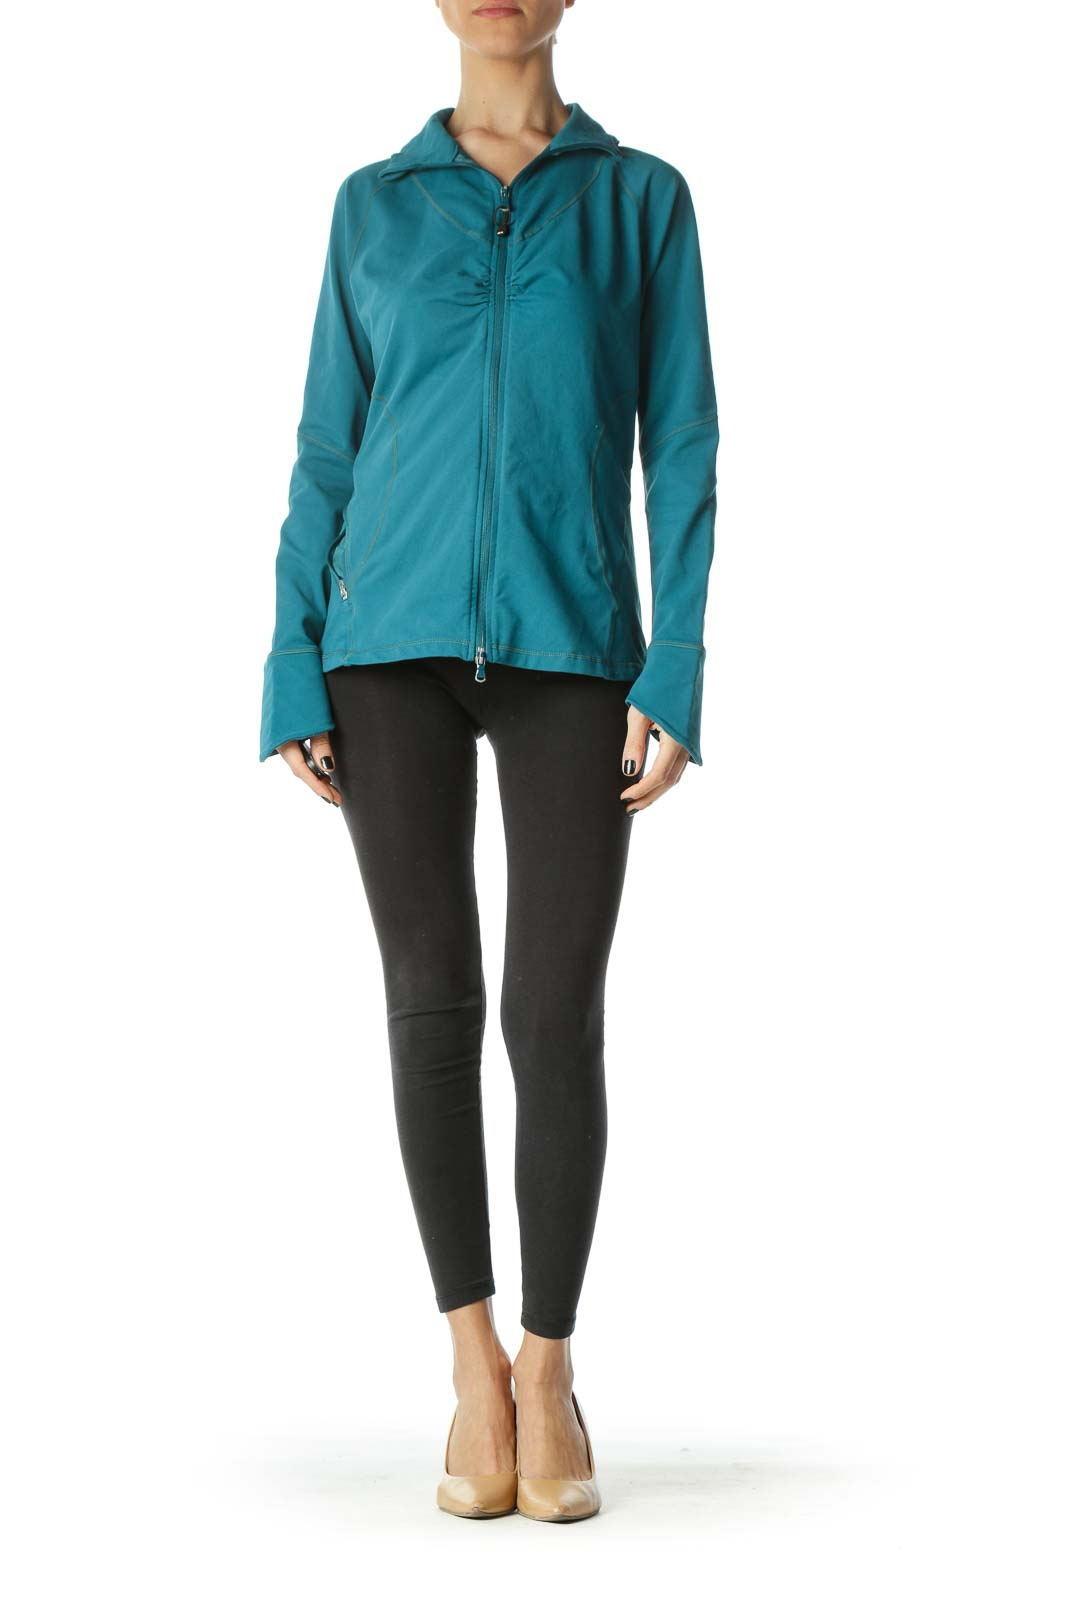 Teal Blue Stretch Scrunched Sports Jacket